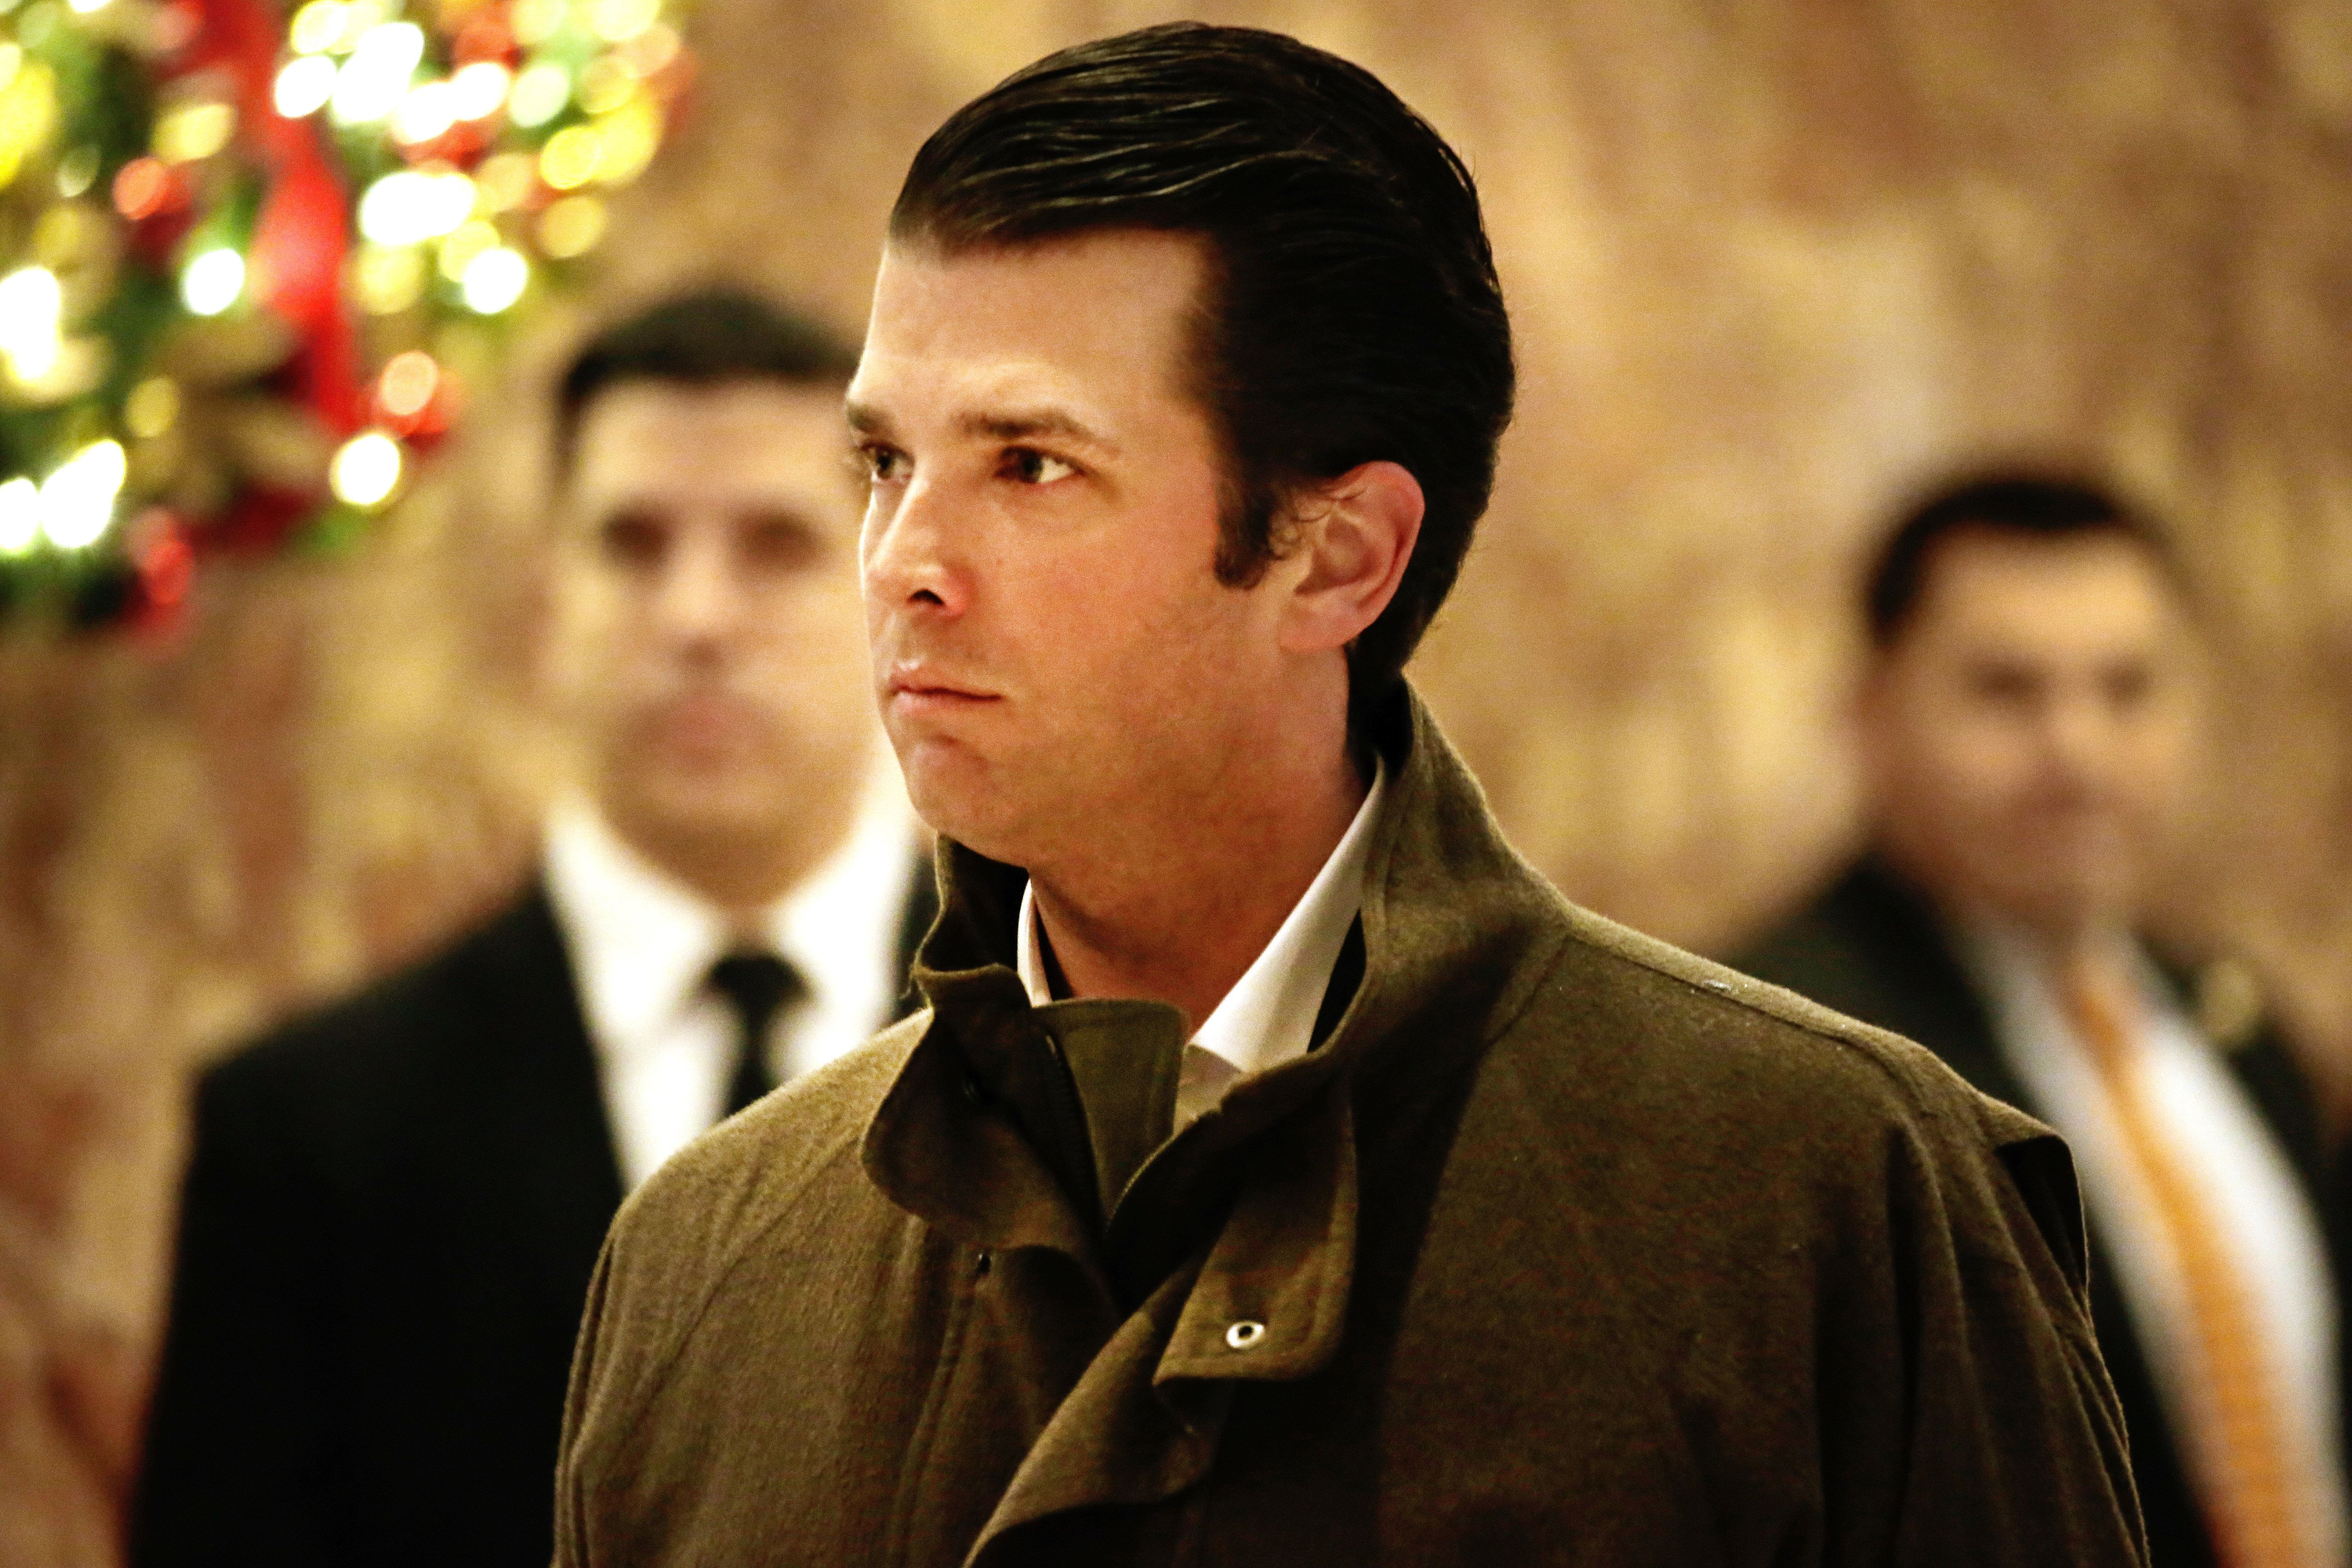 Donald Trump Jr., son of U.S. President-elect Donal Trump, walks through the lobby of Trump Tower in New York, U.S., on Monday, Jan. 2, 2017. President-elect Donald Trump won't end the onslaught of posts on Twitter that fed his unconventional campaign, even after taking on the formalized duties of the Oval Office later this month. Bloomberg: Peter Foley/Pool via Bloomberg